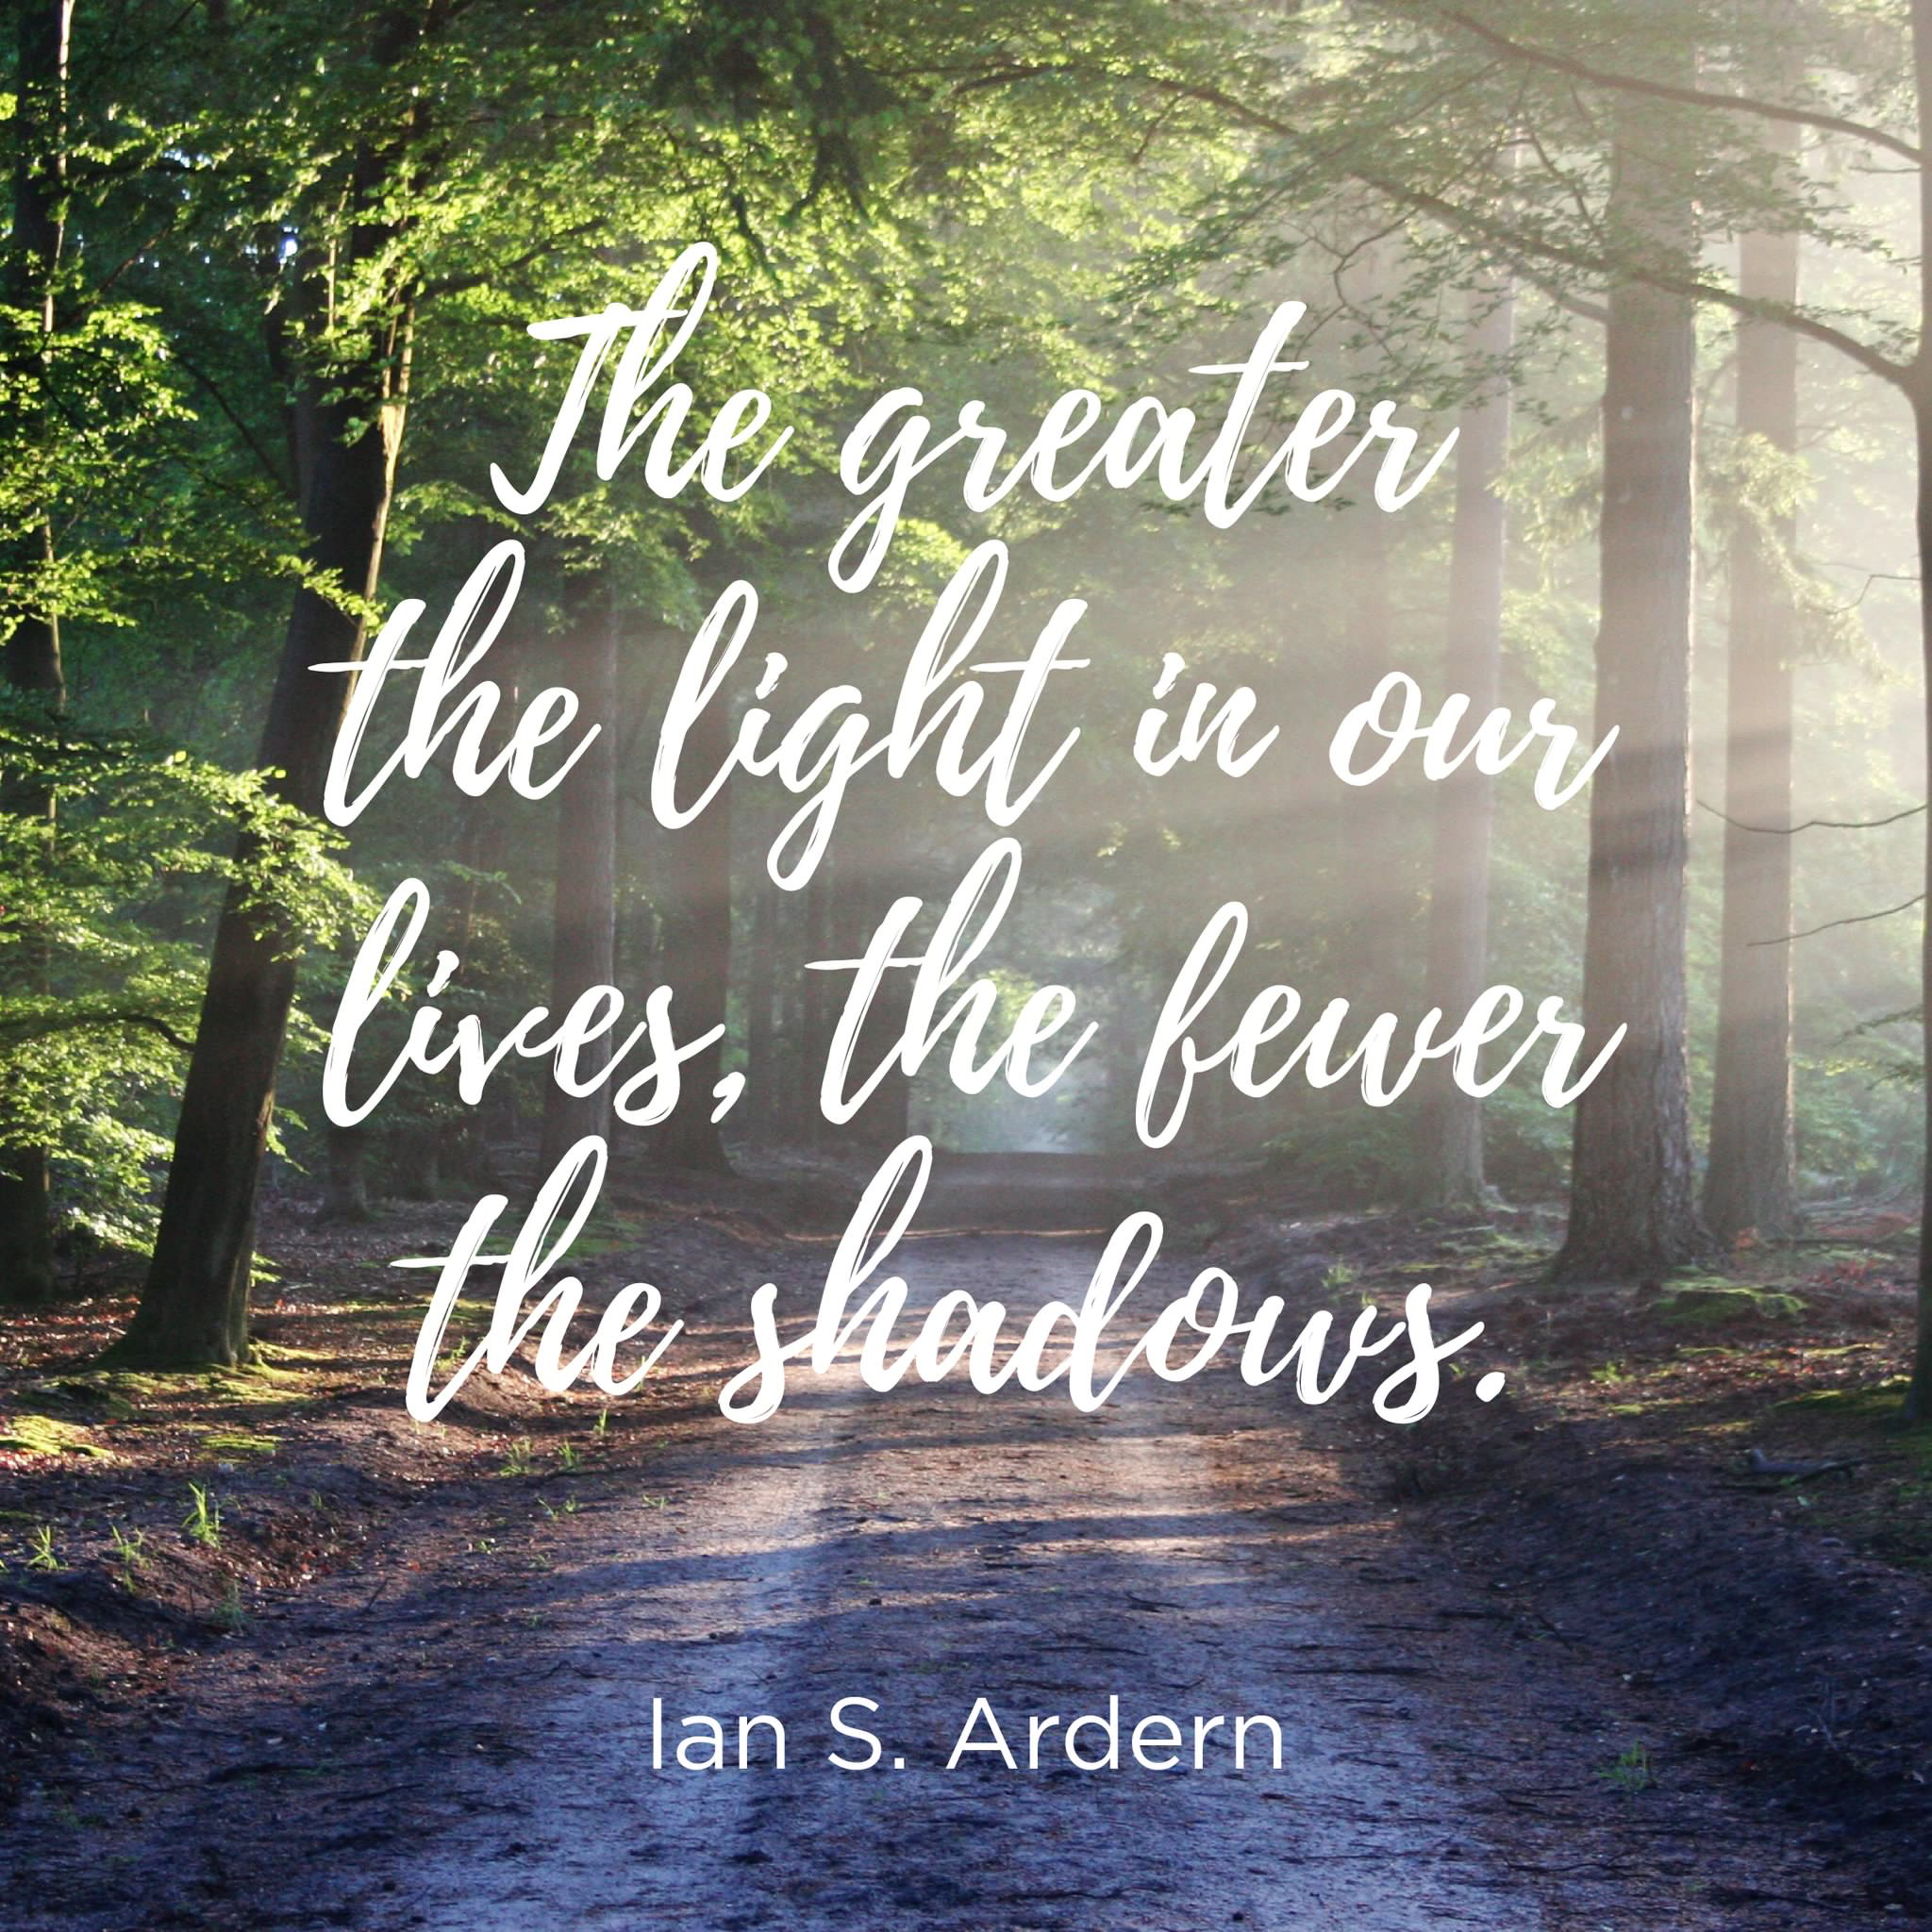 LDS General Conference 2017 Quote By Ian S Ardern.